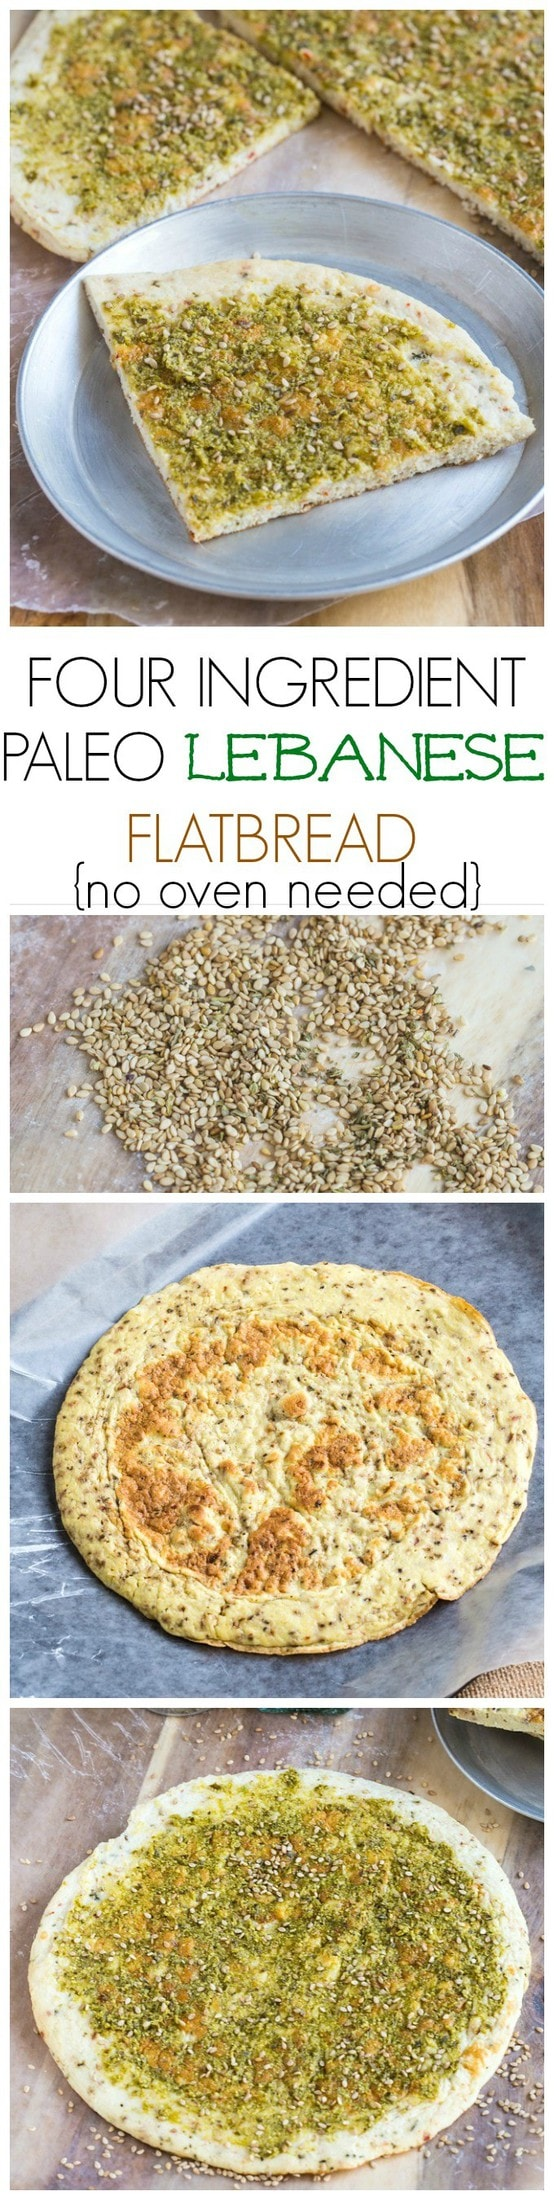 Paleo Lebanese Flatbread- Just four ingredients are needed and no oven- A delicious low carb snack or light meal! {Paleo, Whole 30 and gluten free!}